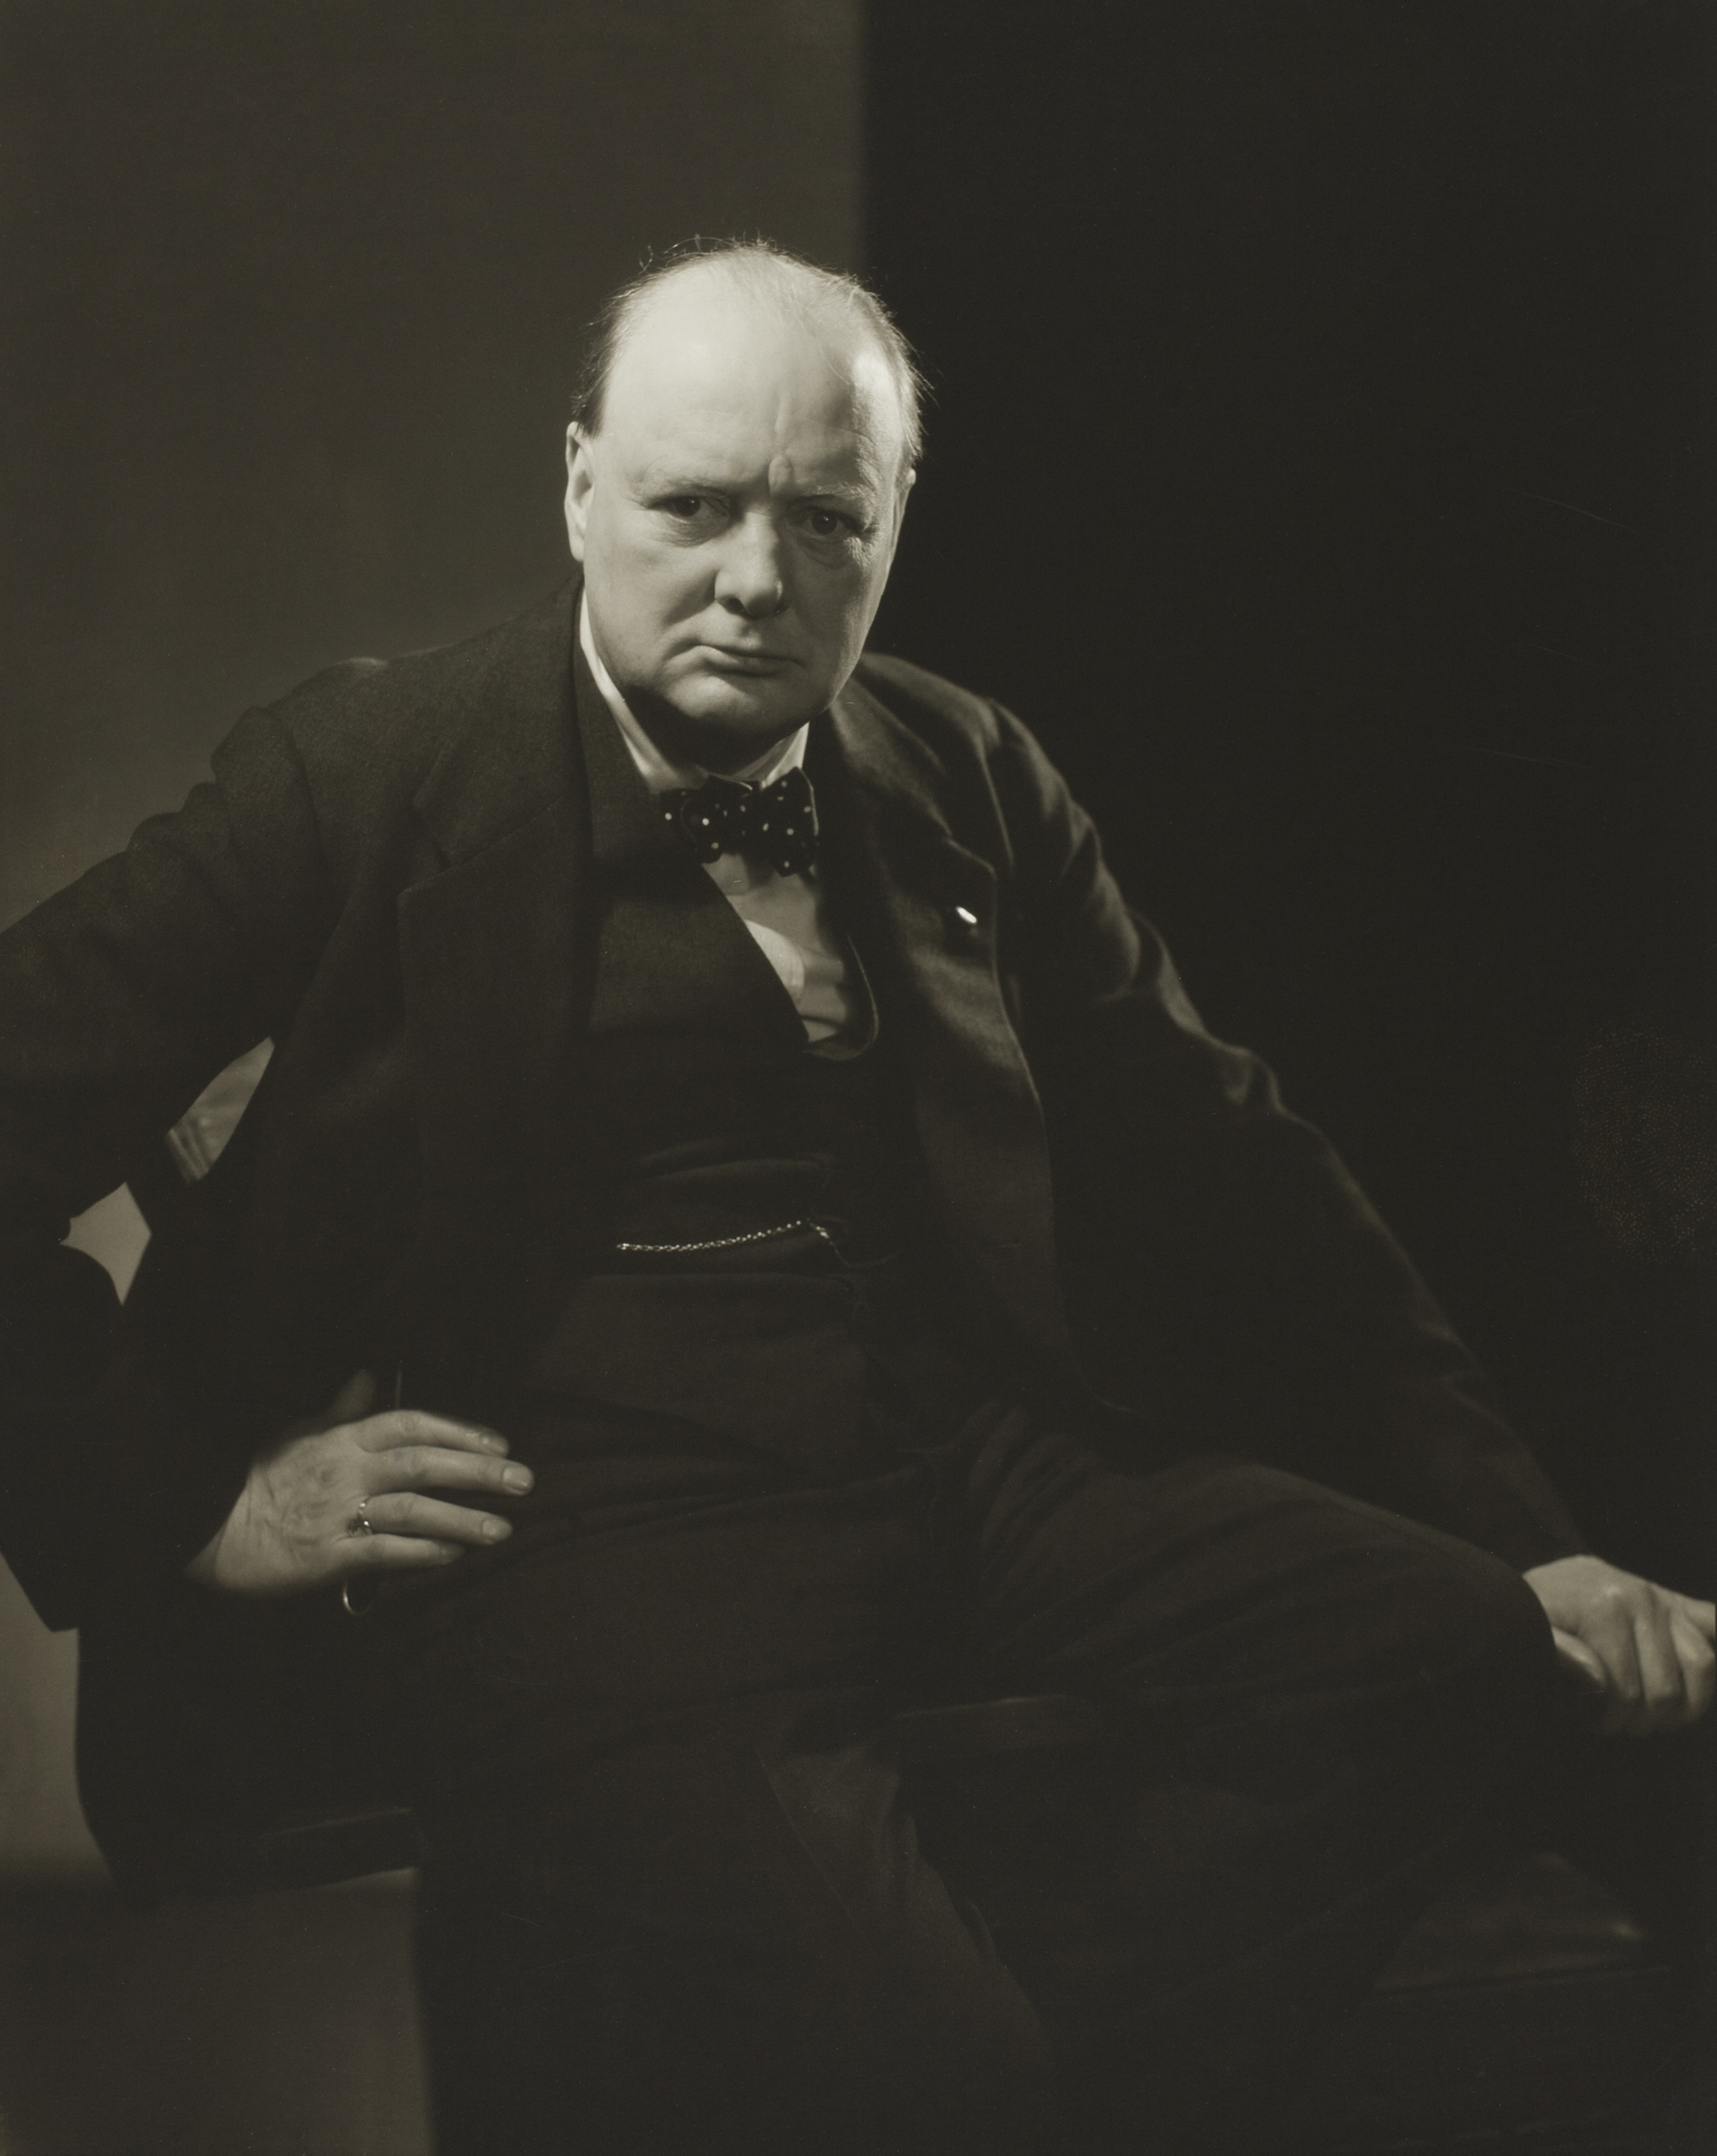 Edward Steichen. Winston Churchill, 1932. The Art Institute of Chicago, Bequest of Edward Steichen by direction of Joanna T. Steichen and George Eastman House. © 2014 The Estate of Edward Steichen/Artists Rights Society (ARS), New York.